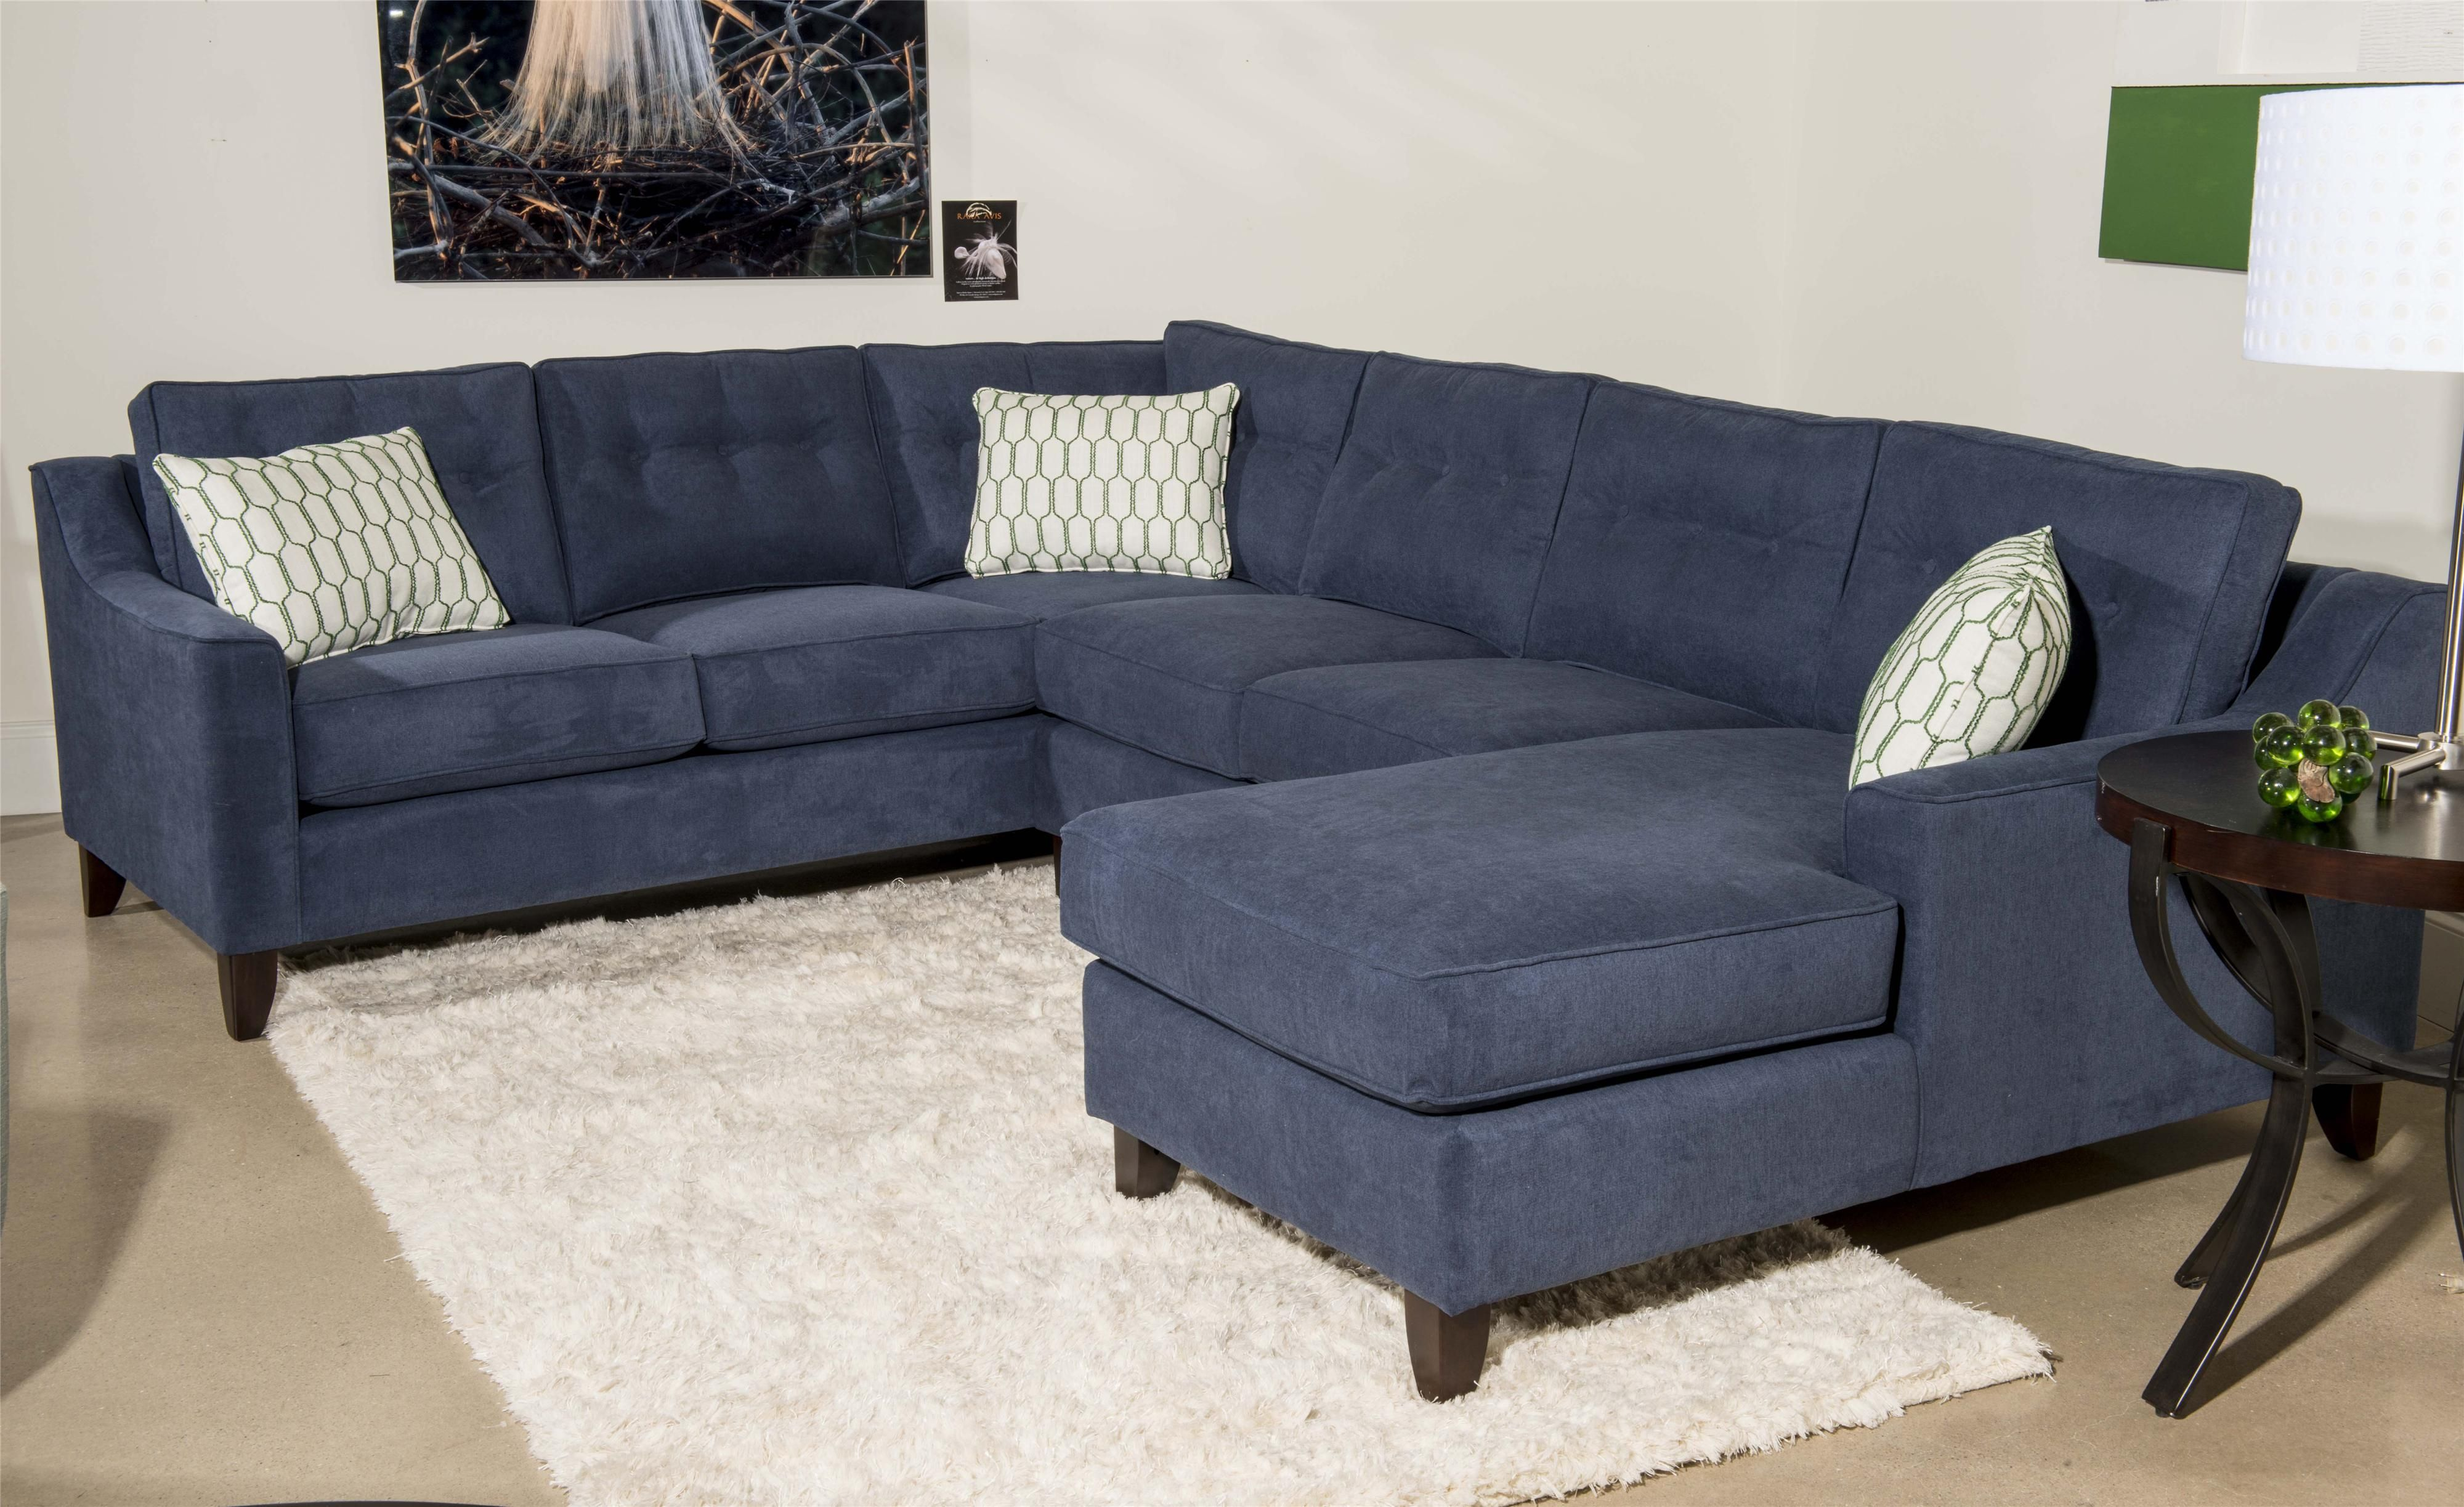 Vintage Navy Blue Sectional Sofa With Additional Home Spectacular For Remodel Ideas Interior Design Pictures Living Room Decoration